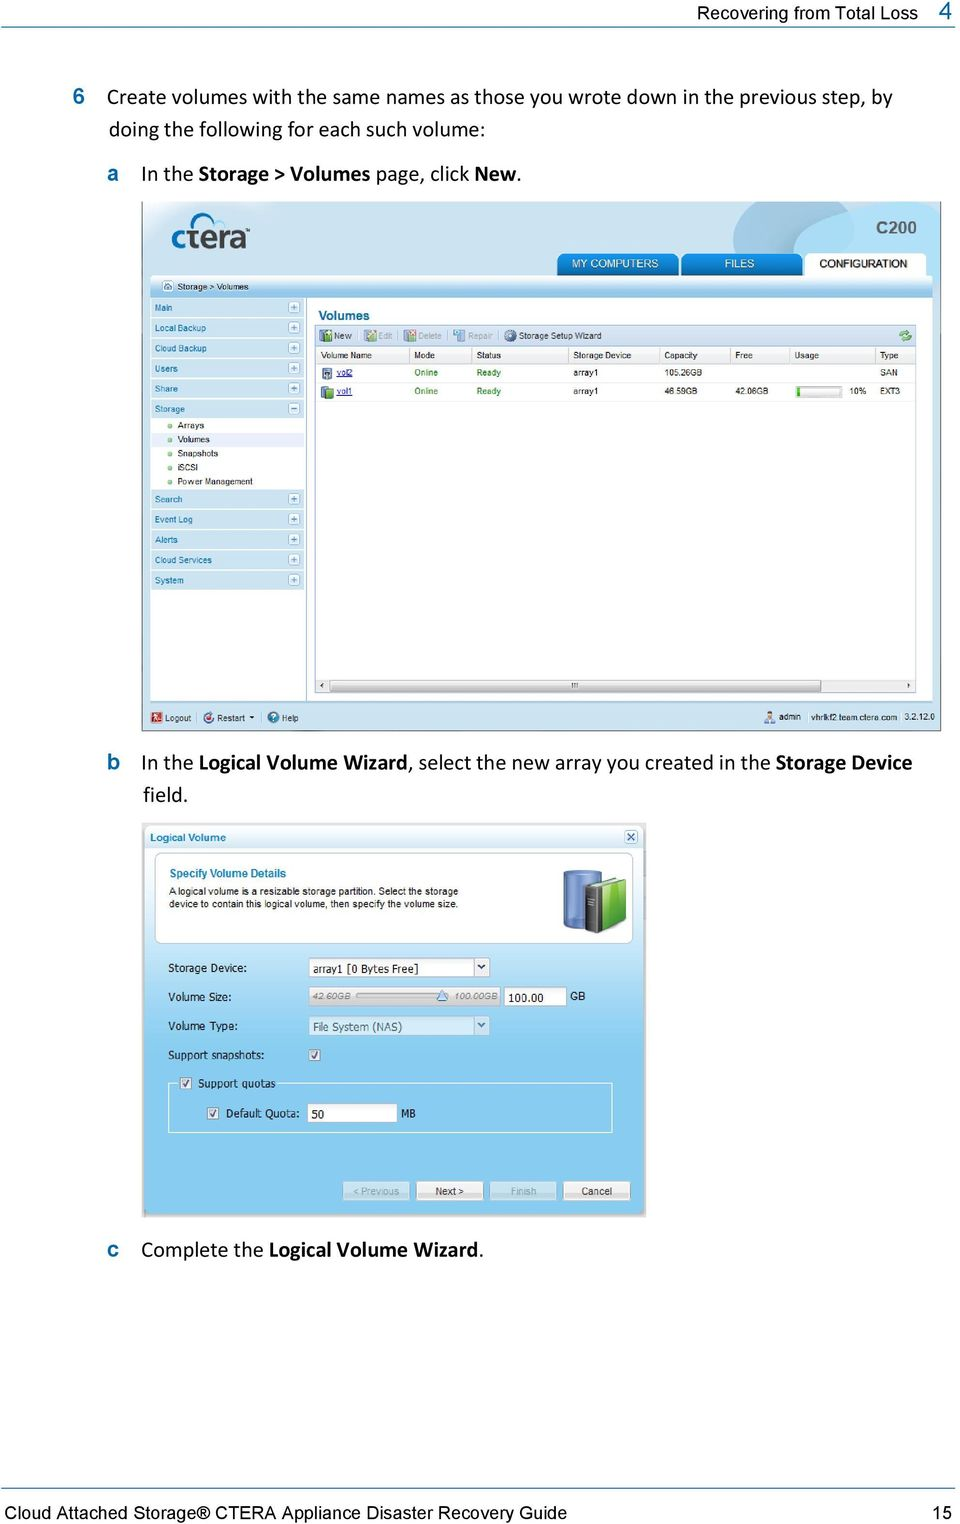 New. b In the Logical Volume Wizard, select the new array you created in the Storage Device field.